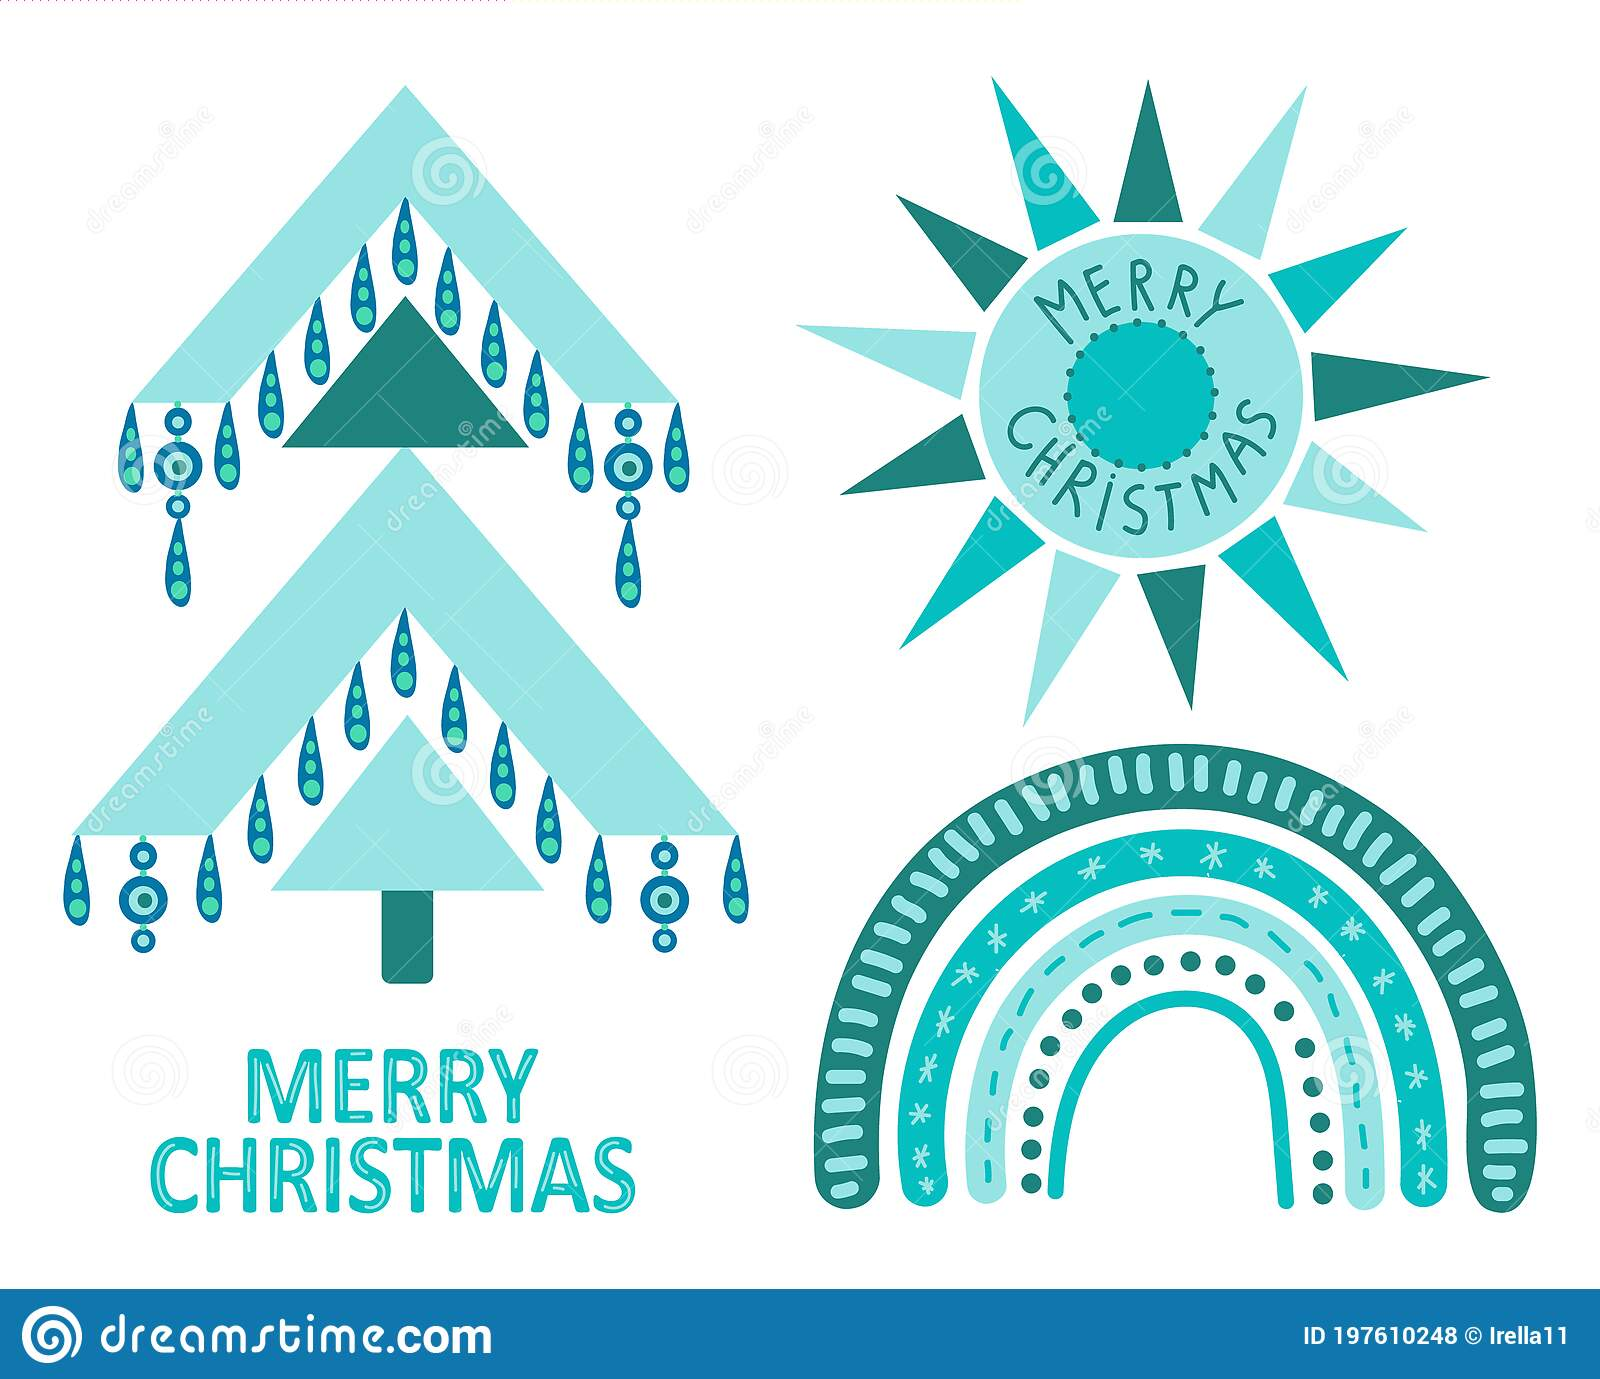 Geometric Christmas Tree With Ethnic Ornaments In Bohemian Style Isolated On White Background Winter Holidays Rustic Decor Stock Vector Illustration Of Blue Decorated 197610248